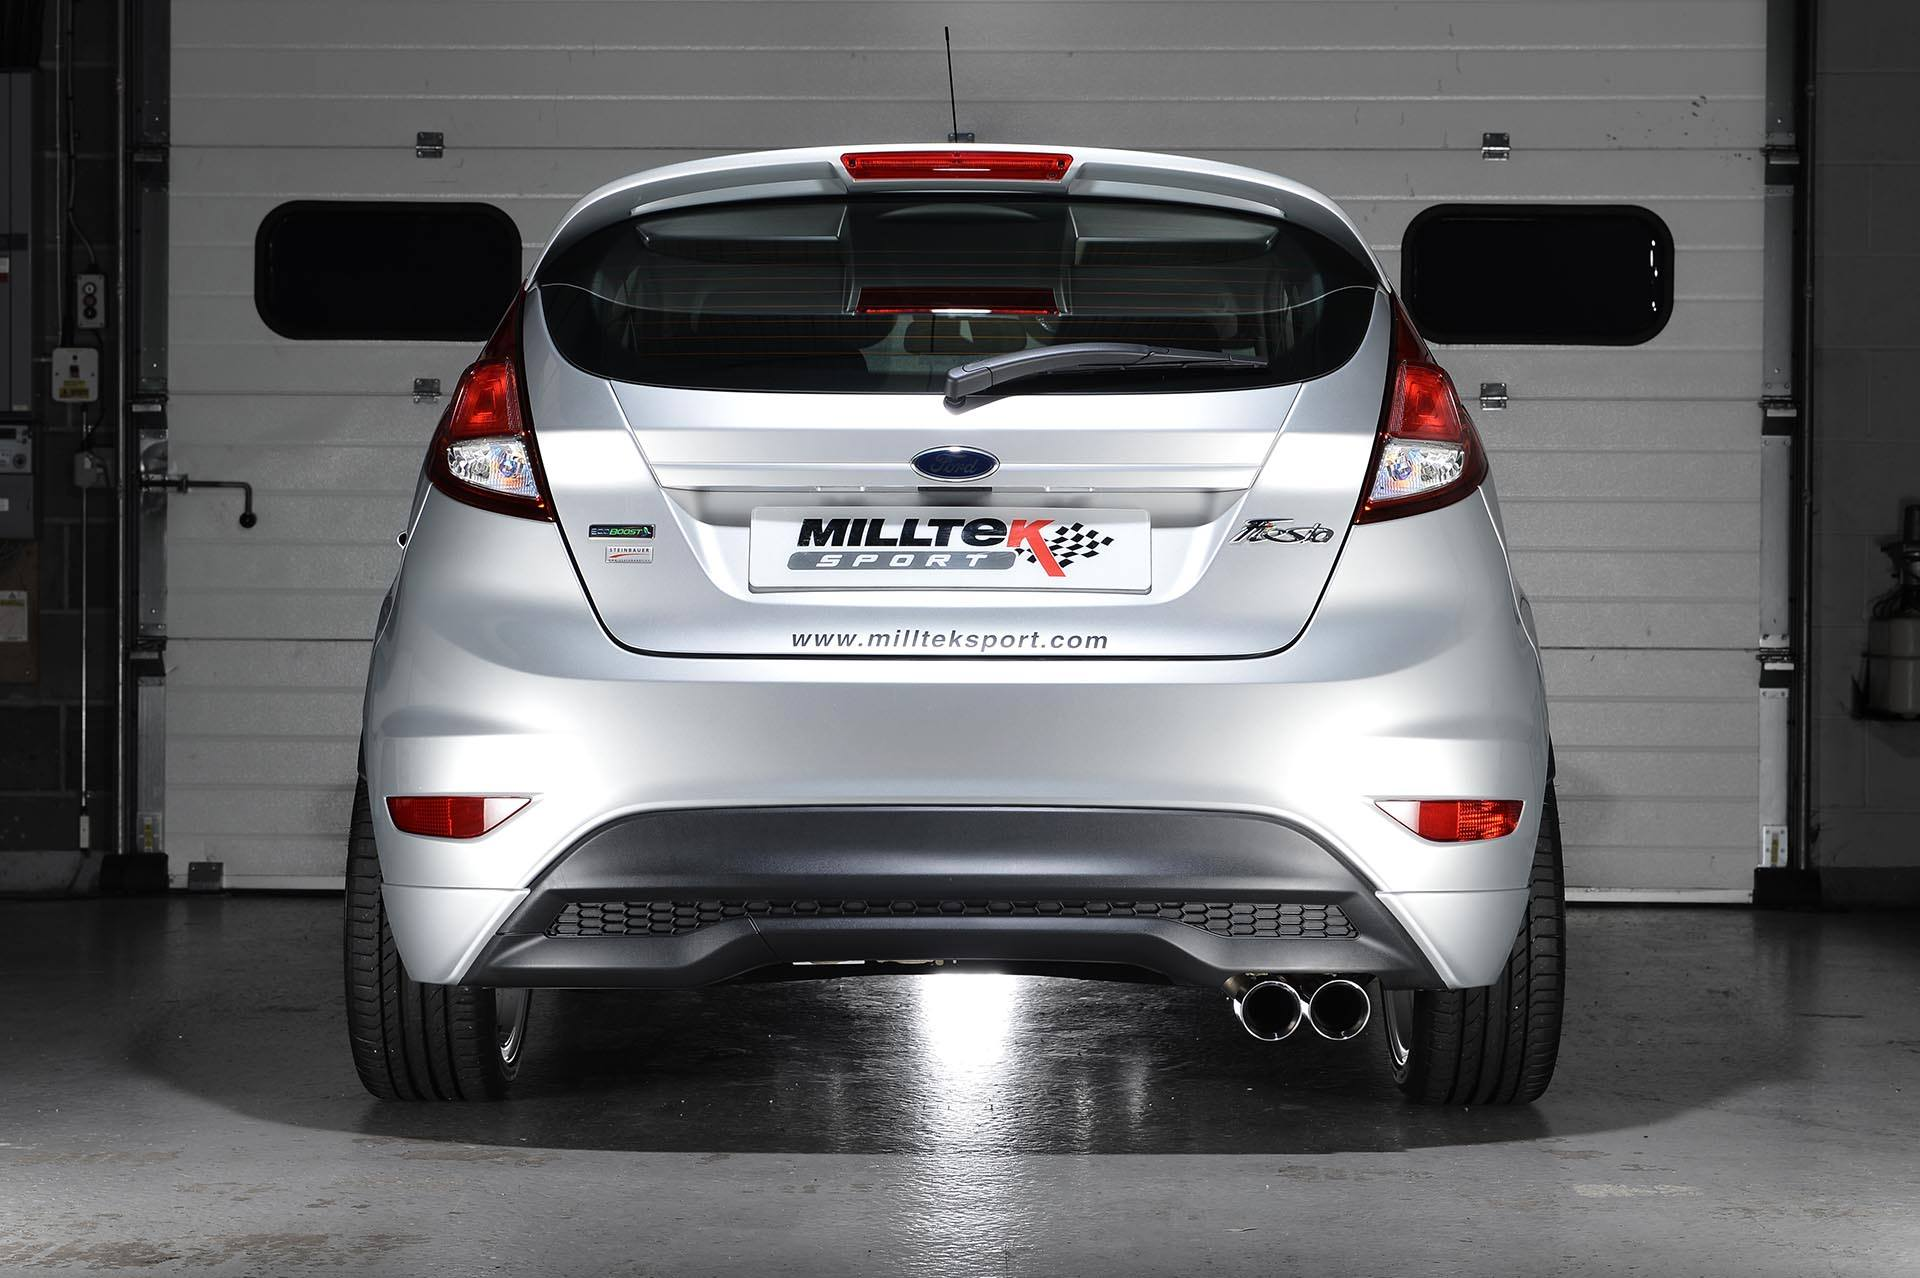 Ford Escape 2014 Custom >> Milltek Announces Sports Exhaust for Ford Fiesta 1.0 EcoBoost - autoevolution